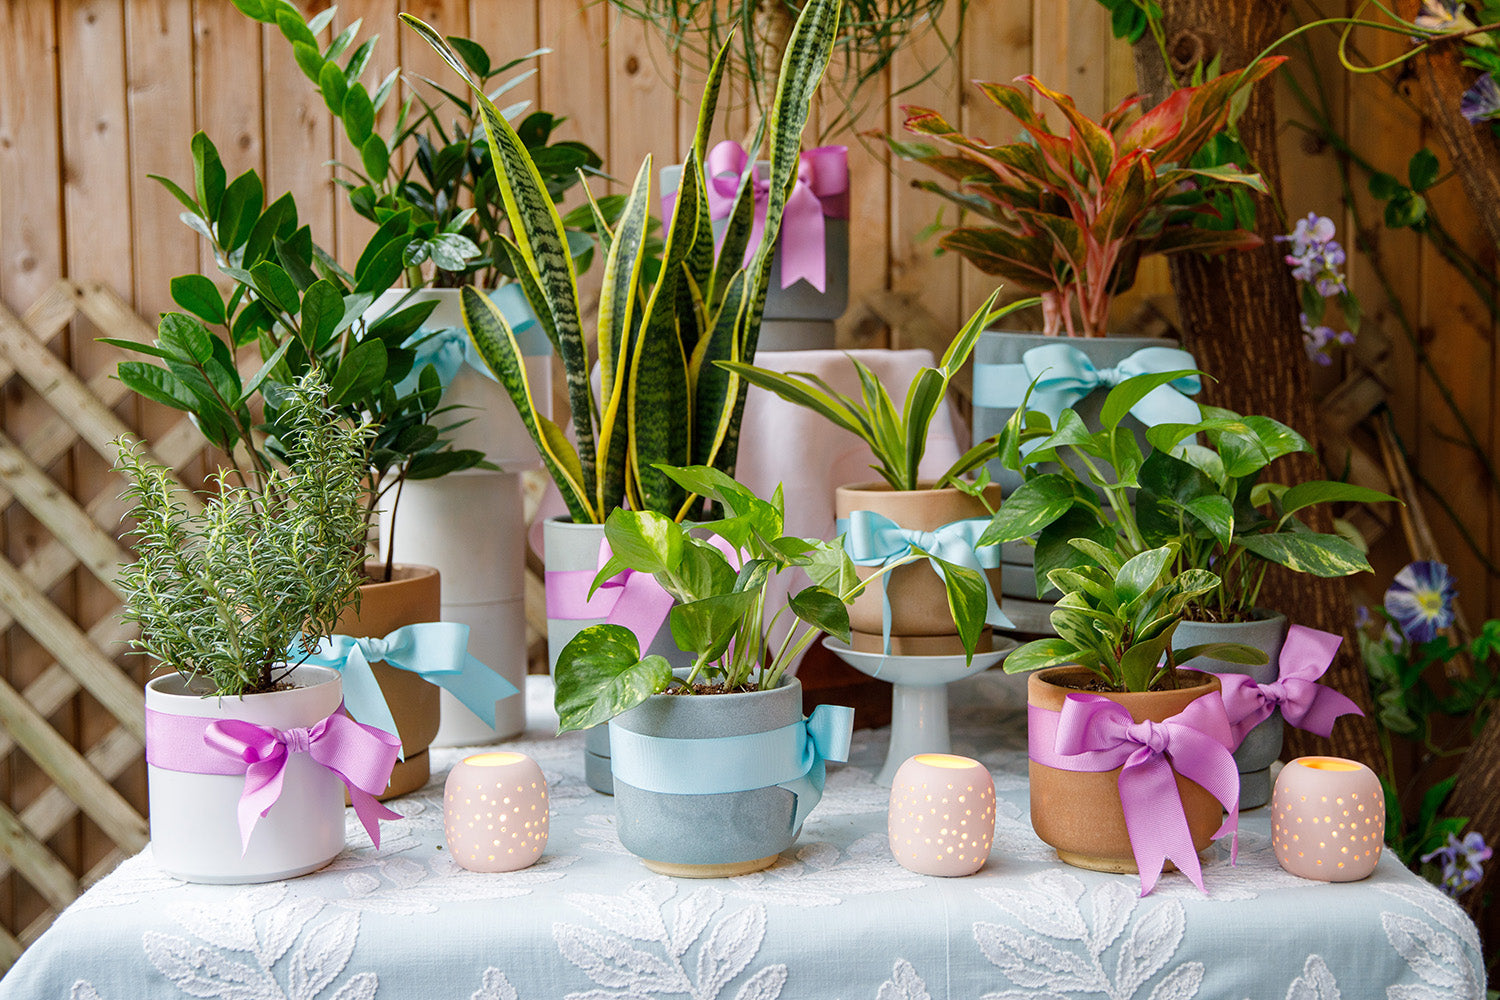 Houseplants displayed on a a table.